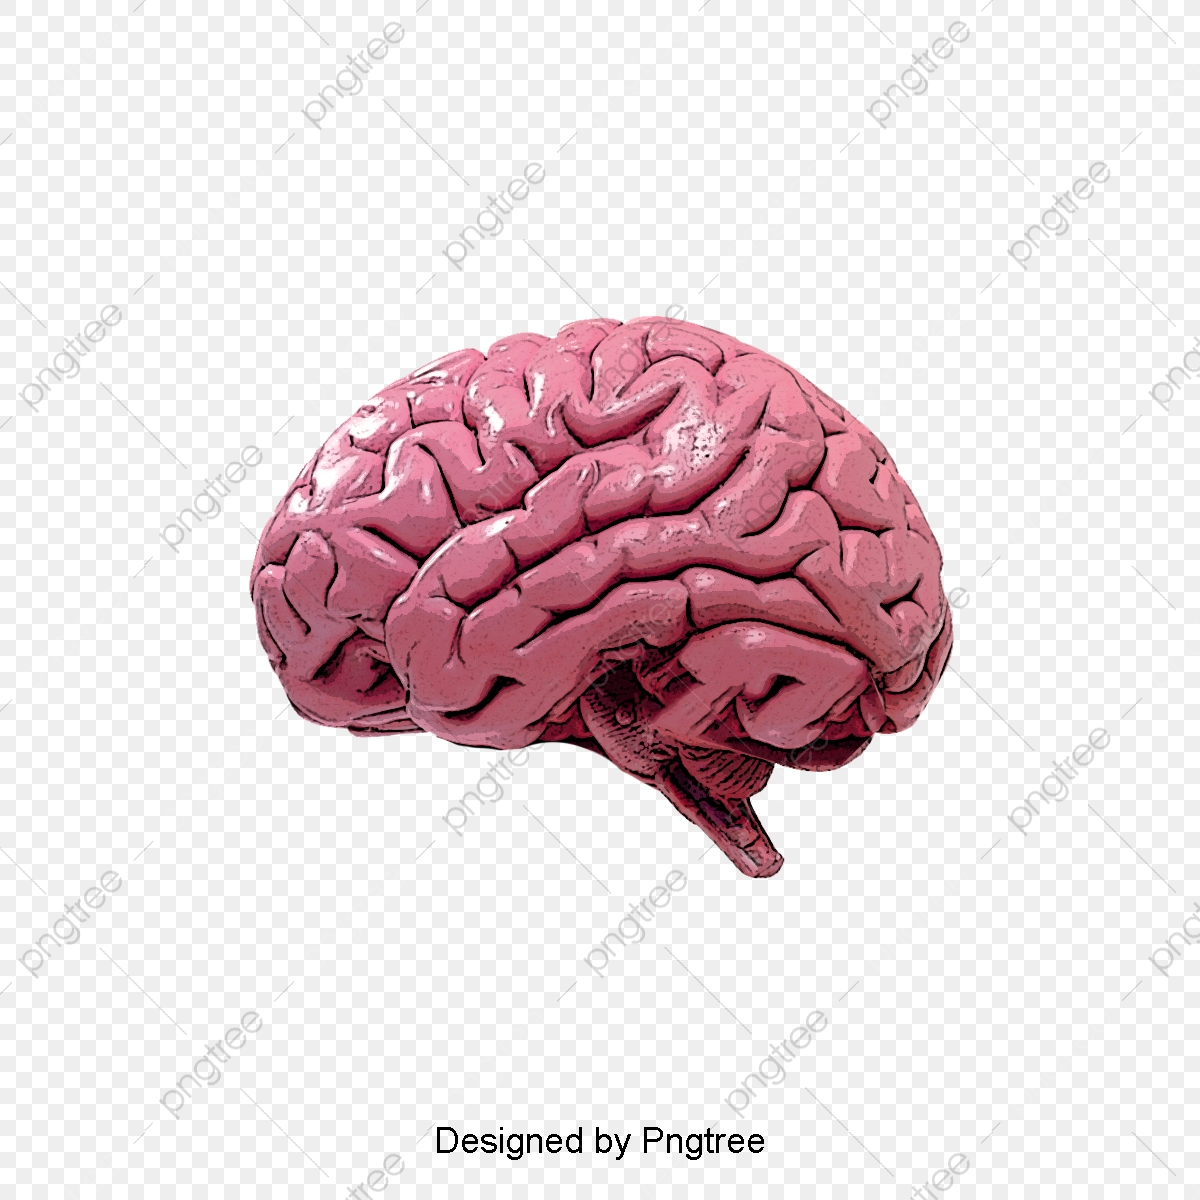 hight resolution of commercial use resource upgrade to premium plan and get license authorization upgradenow human brain brain clipart